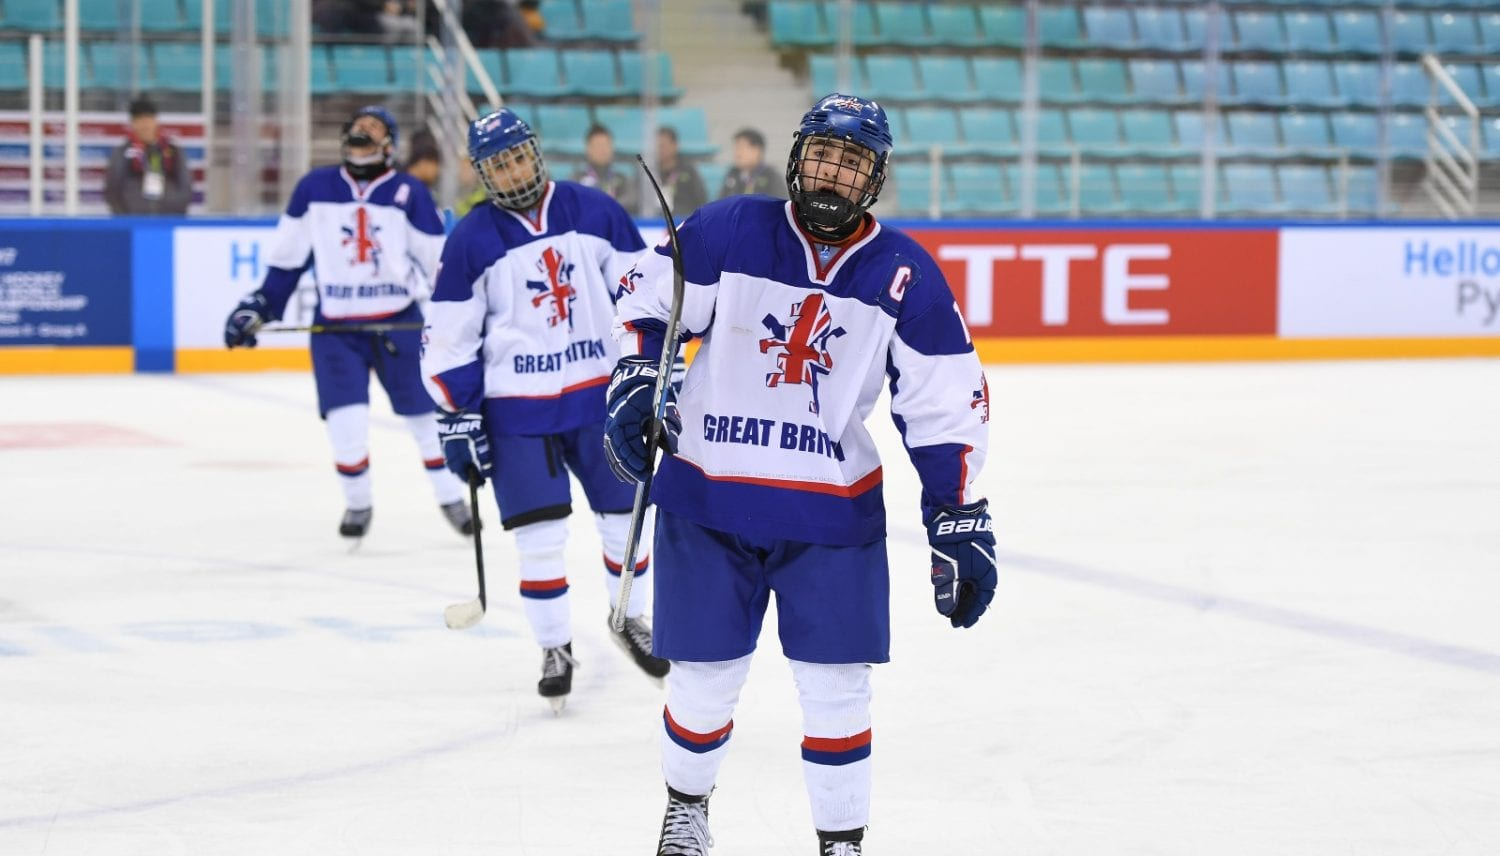 Can Liam Kirk Inspire Local Talent To The Sport British Ice Hockey